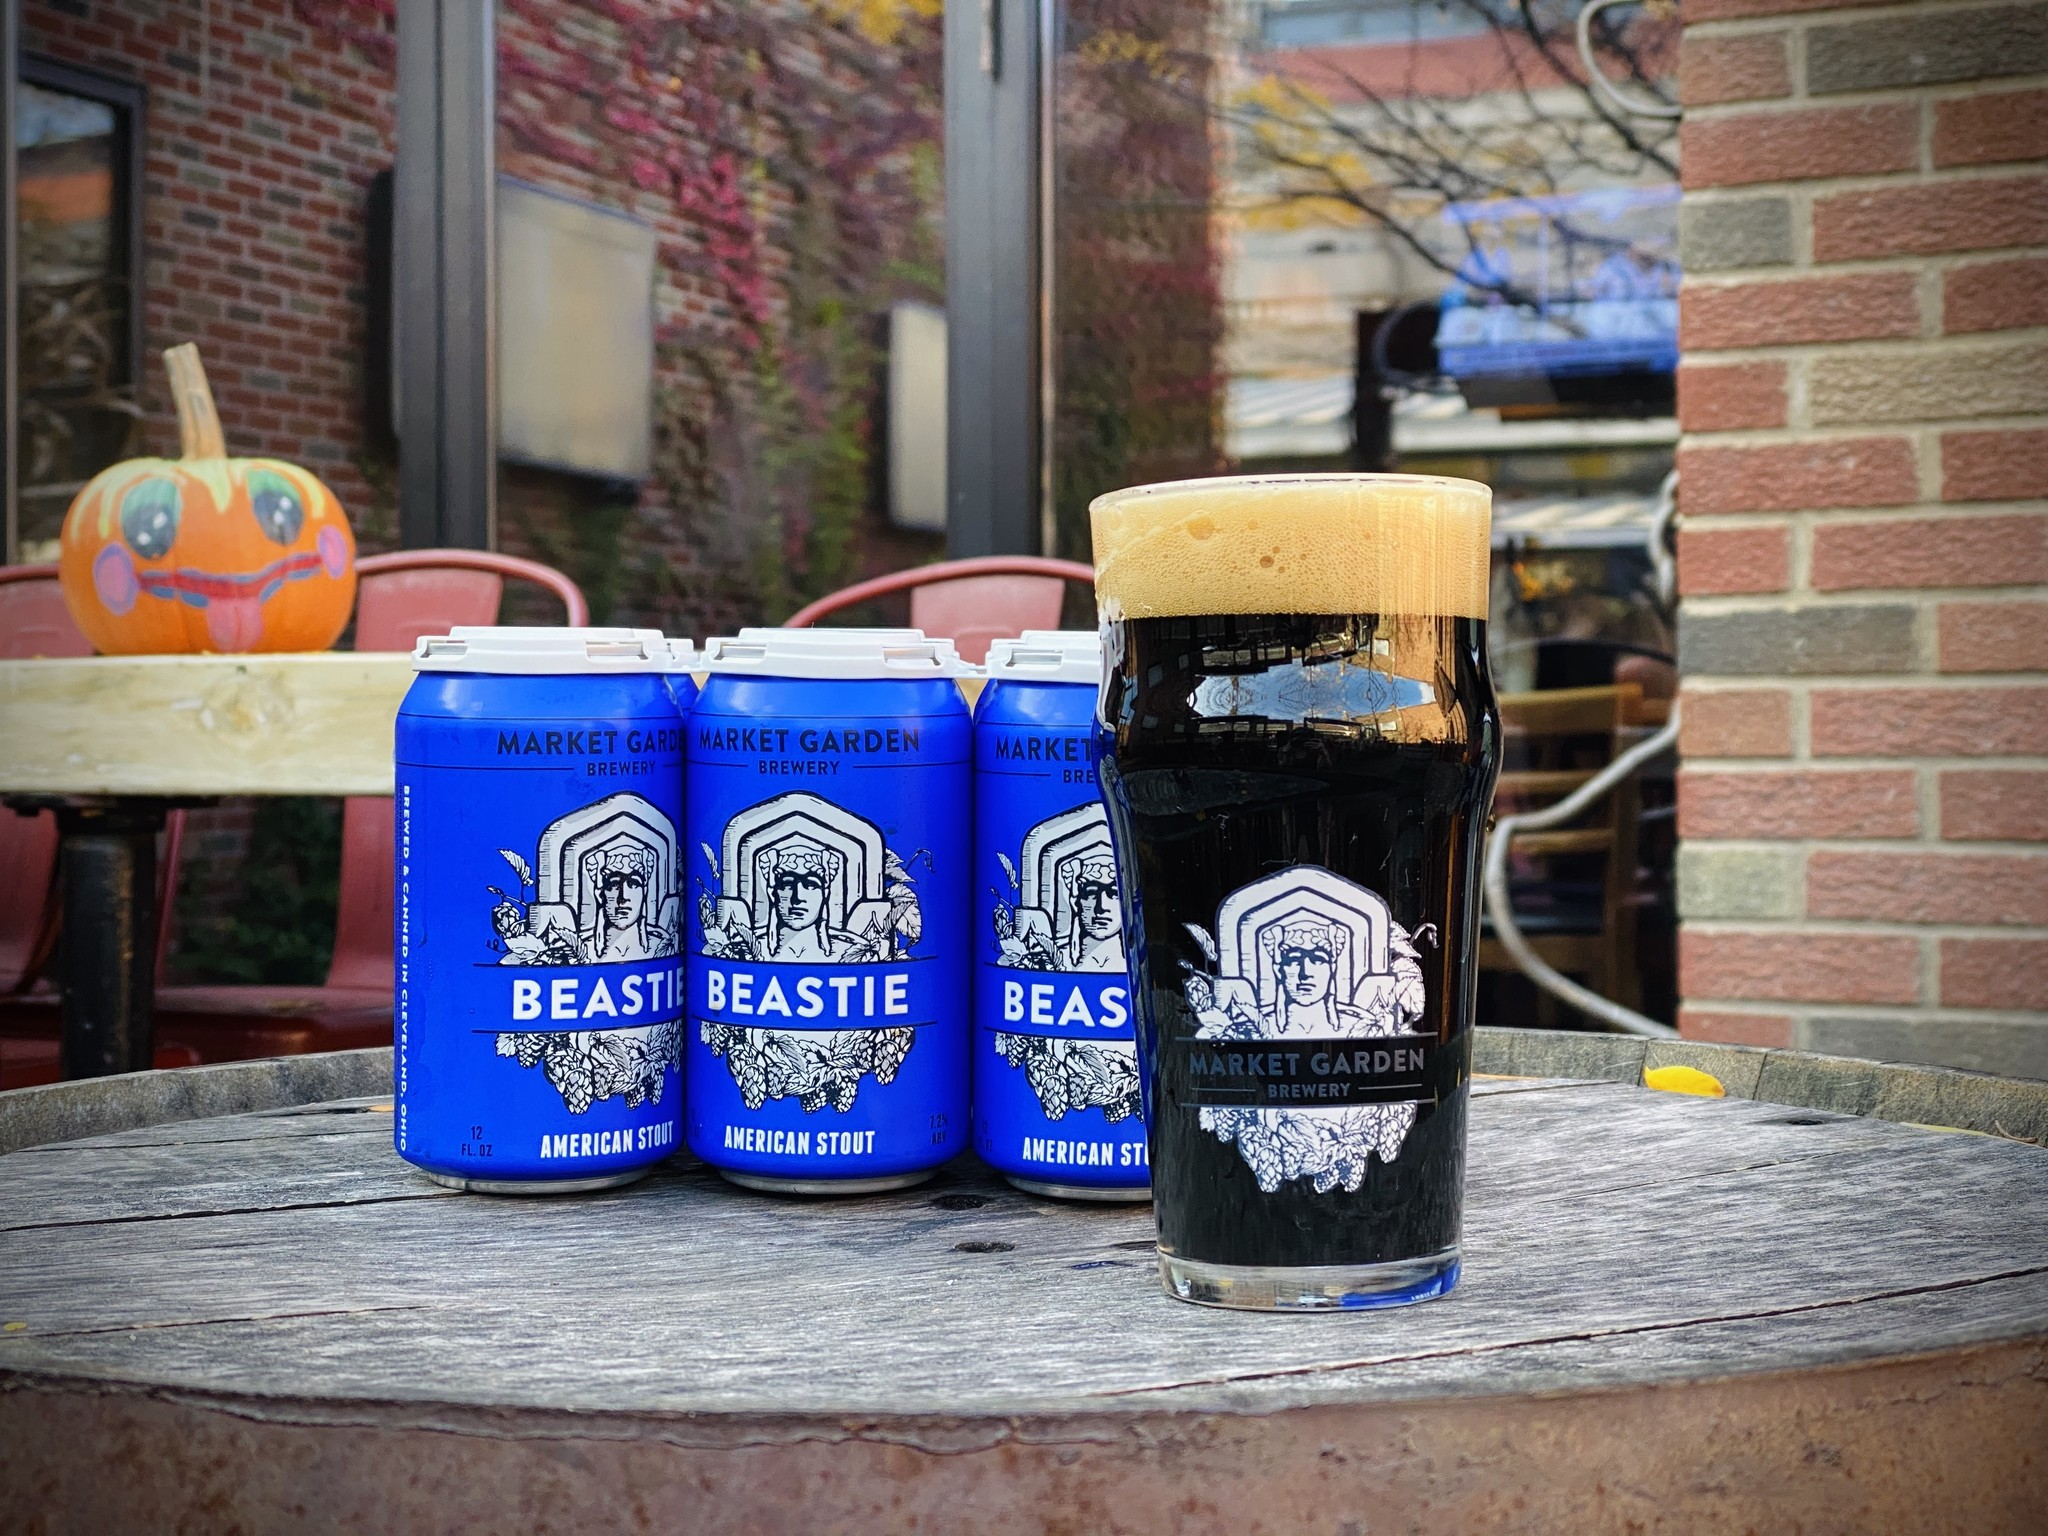 Beastie American Stout 6 Pack (cans)